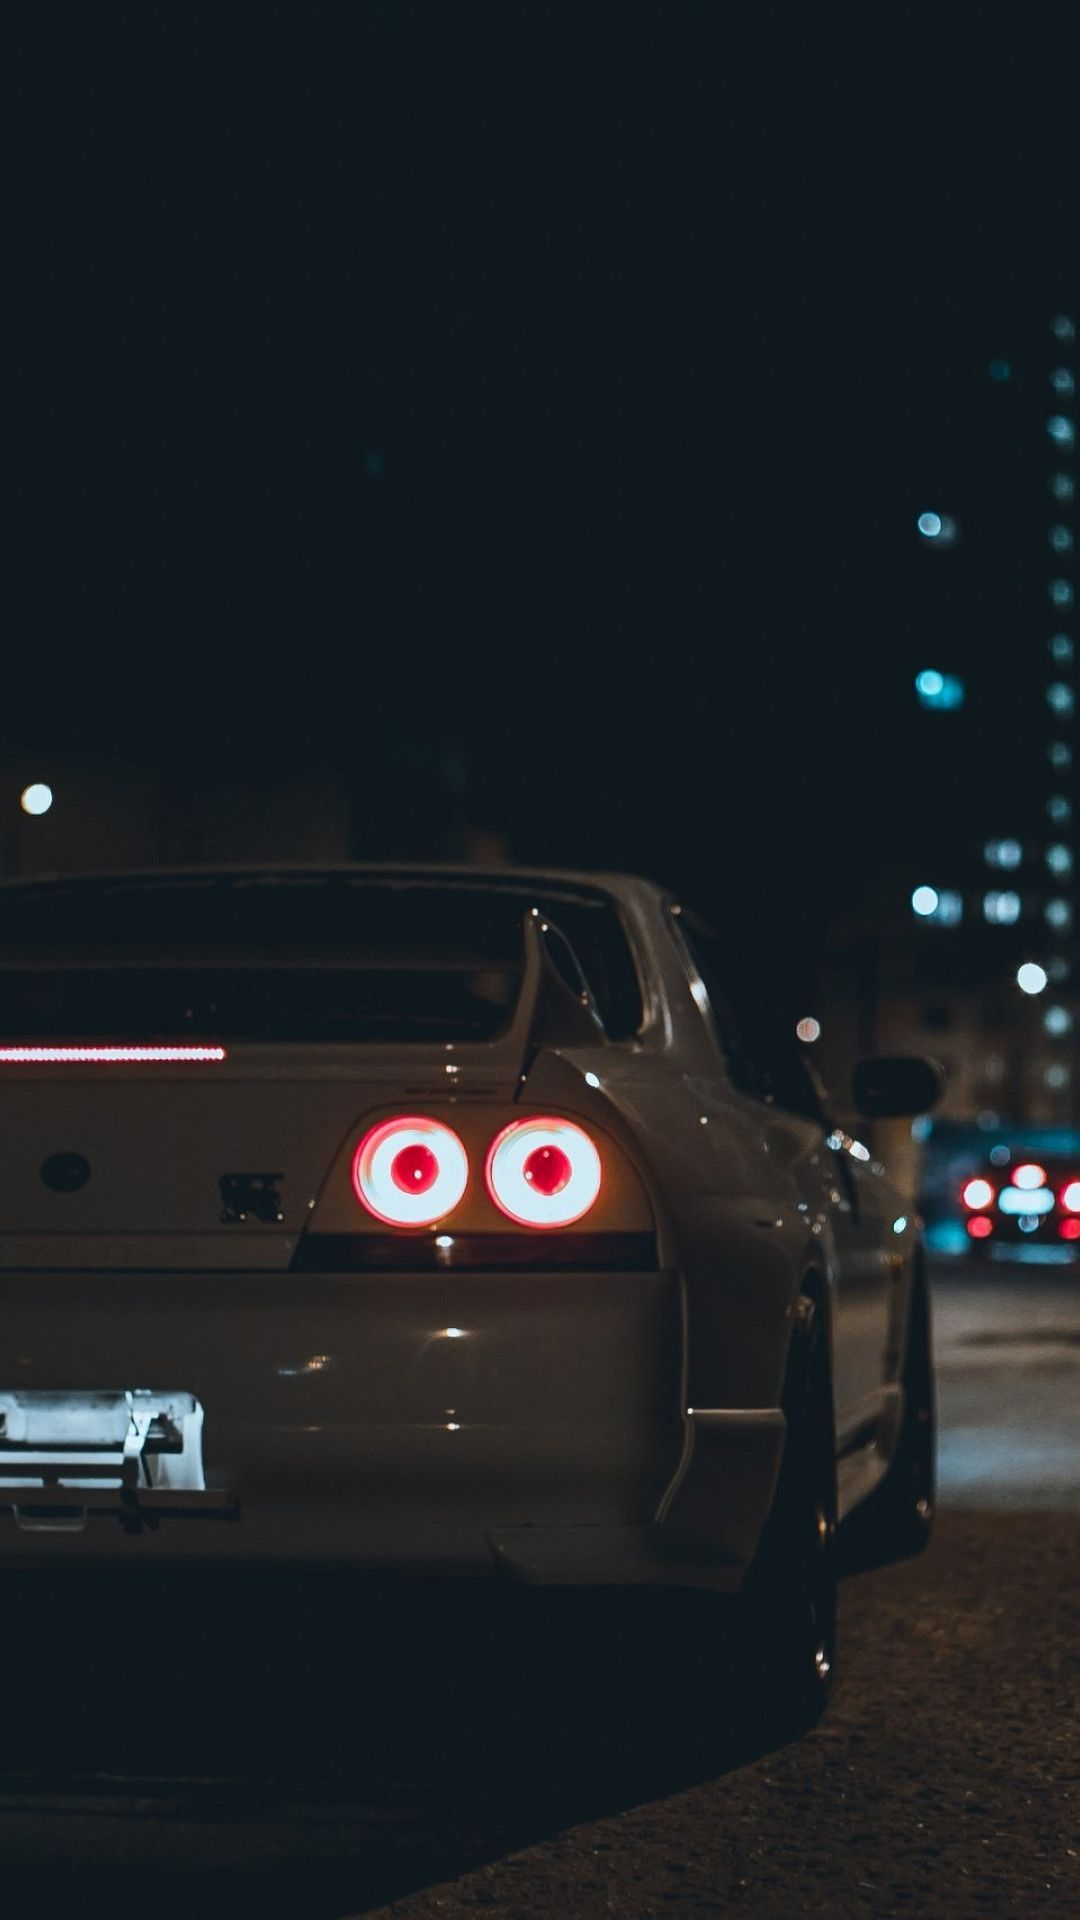 Free Download Car Wallpapers Full Hd To Your Iphone Or Android You Can Also Search Your Favorite Car Wallpap In 2020 Car Iphone Wallpaper Jdm Wallpaper Bmw Wallpapers